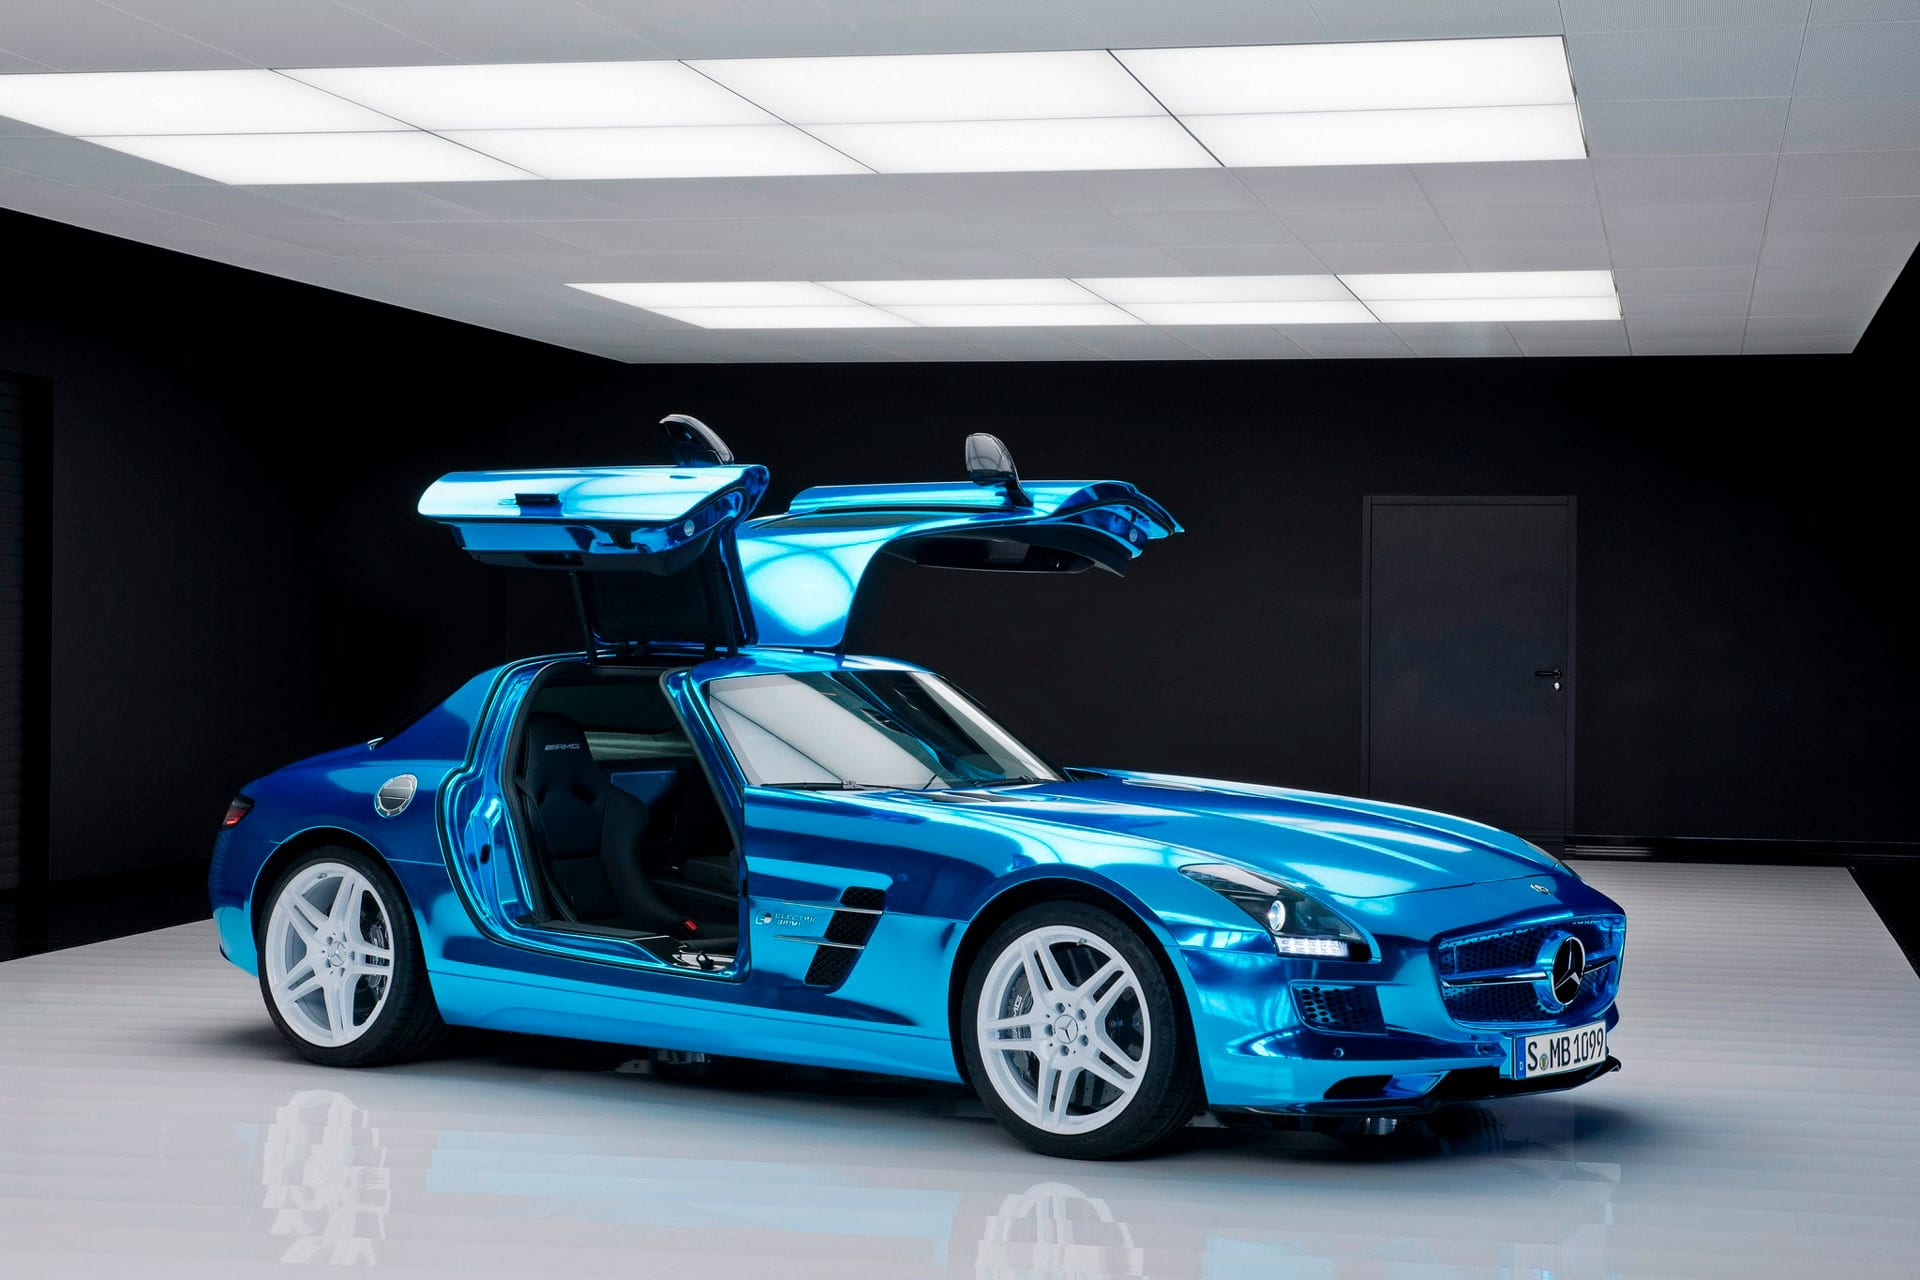 Культовый автомобиль Mercedes-Benz SLS AMG Coupe культовые двери